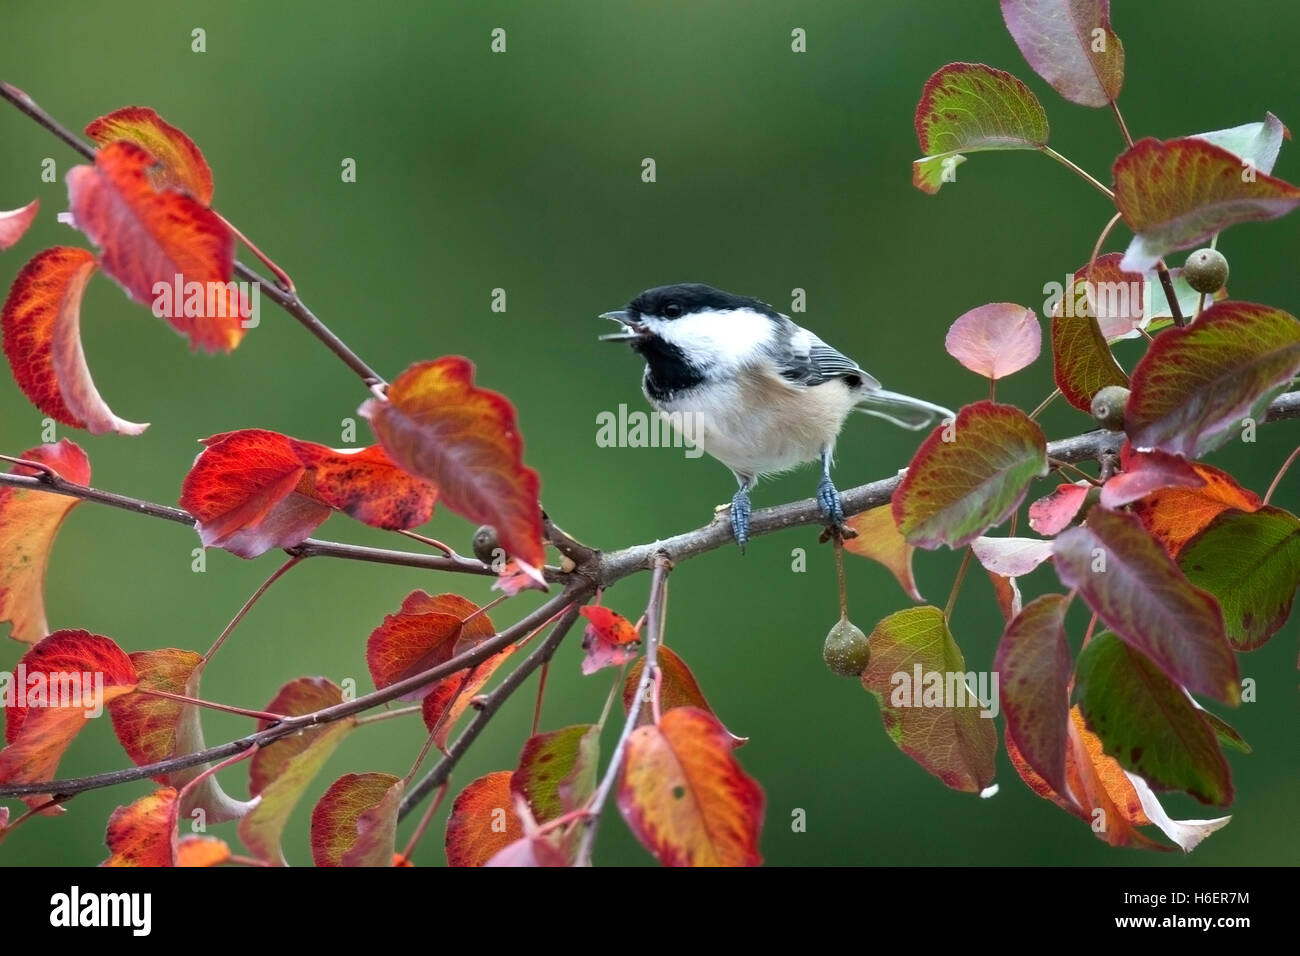 Chickadee chirps while perched on branch with autumn leaves - Stock Image